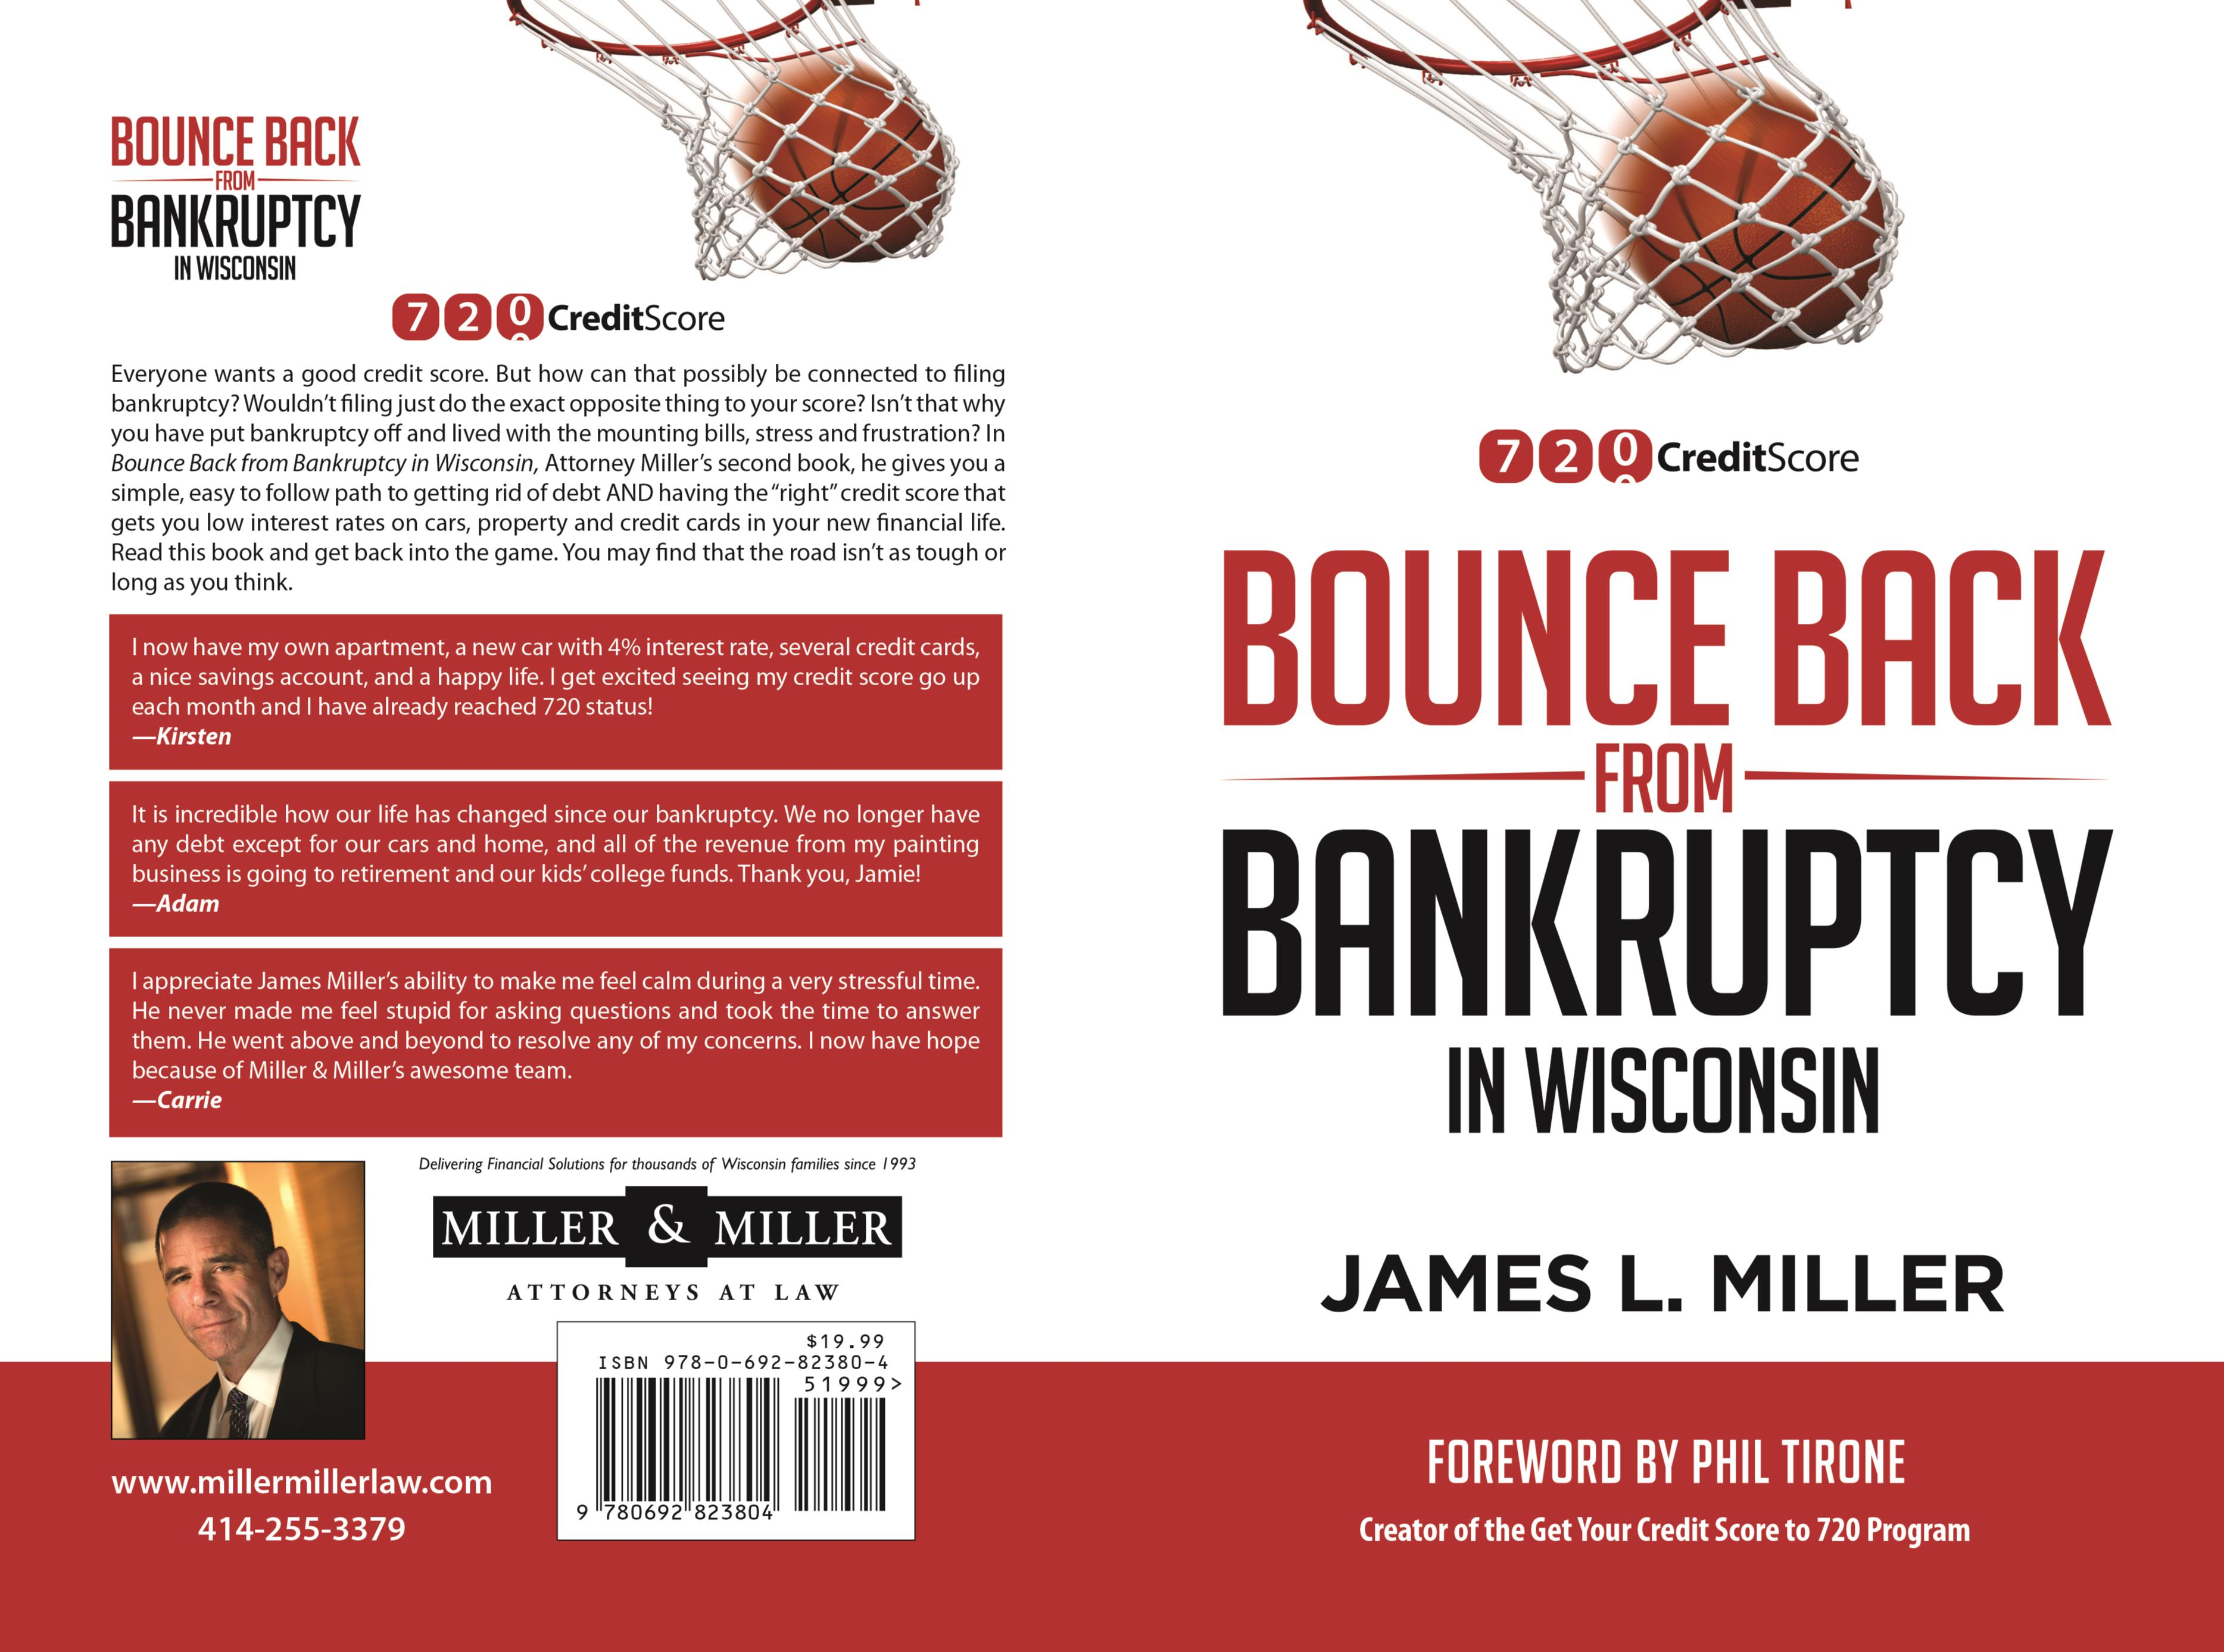 Bounce Back From Bankruptcy cover image